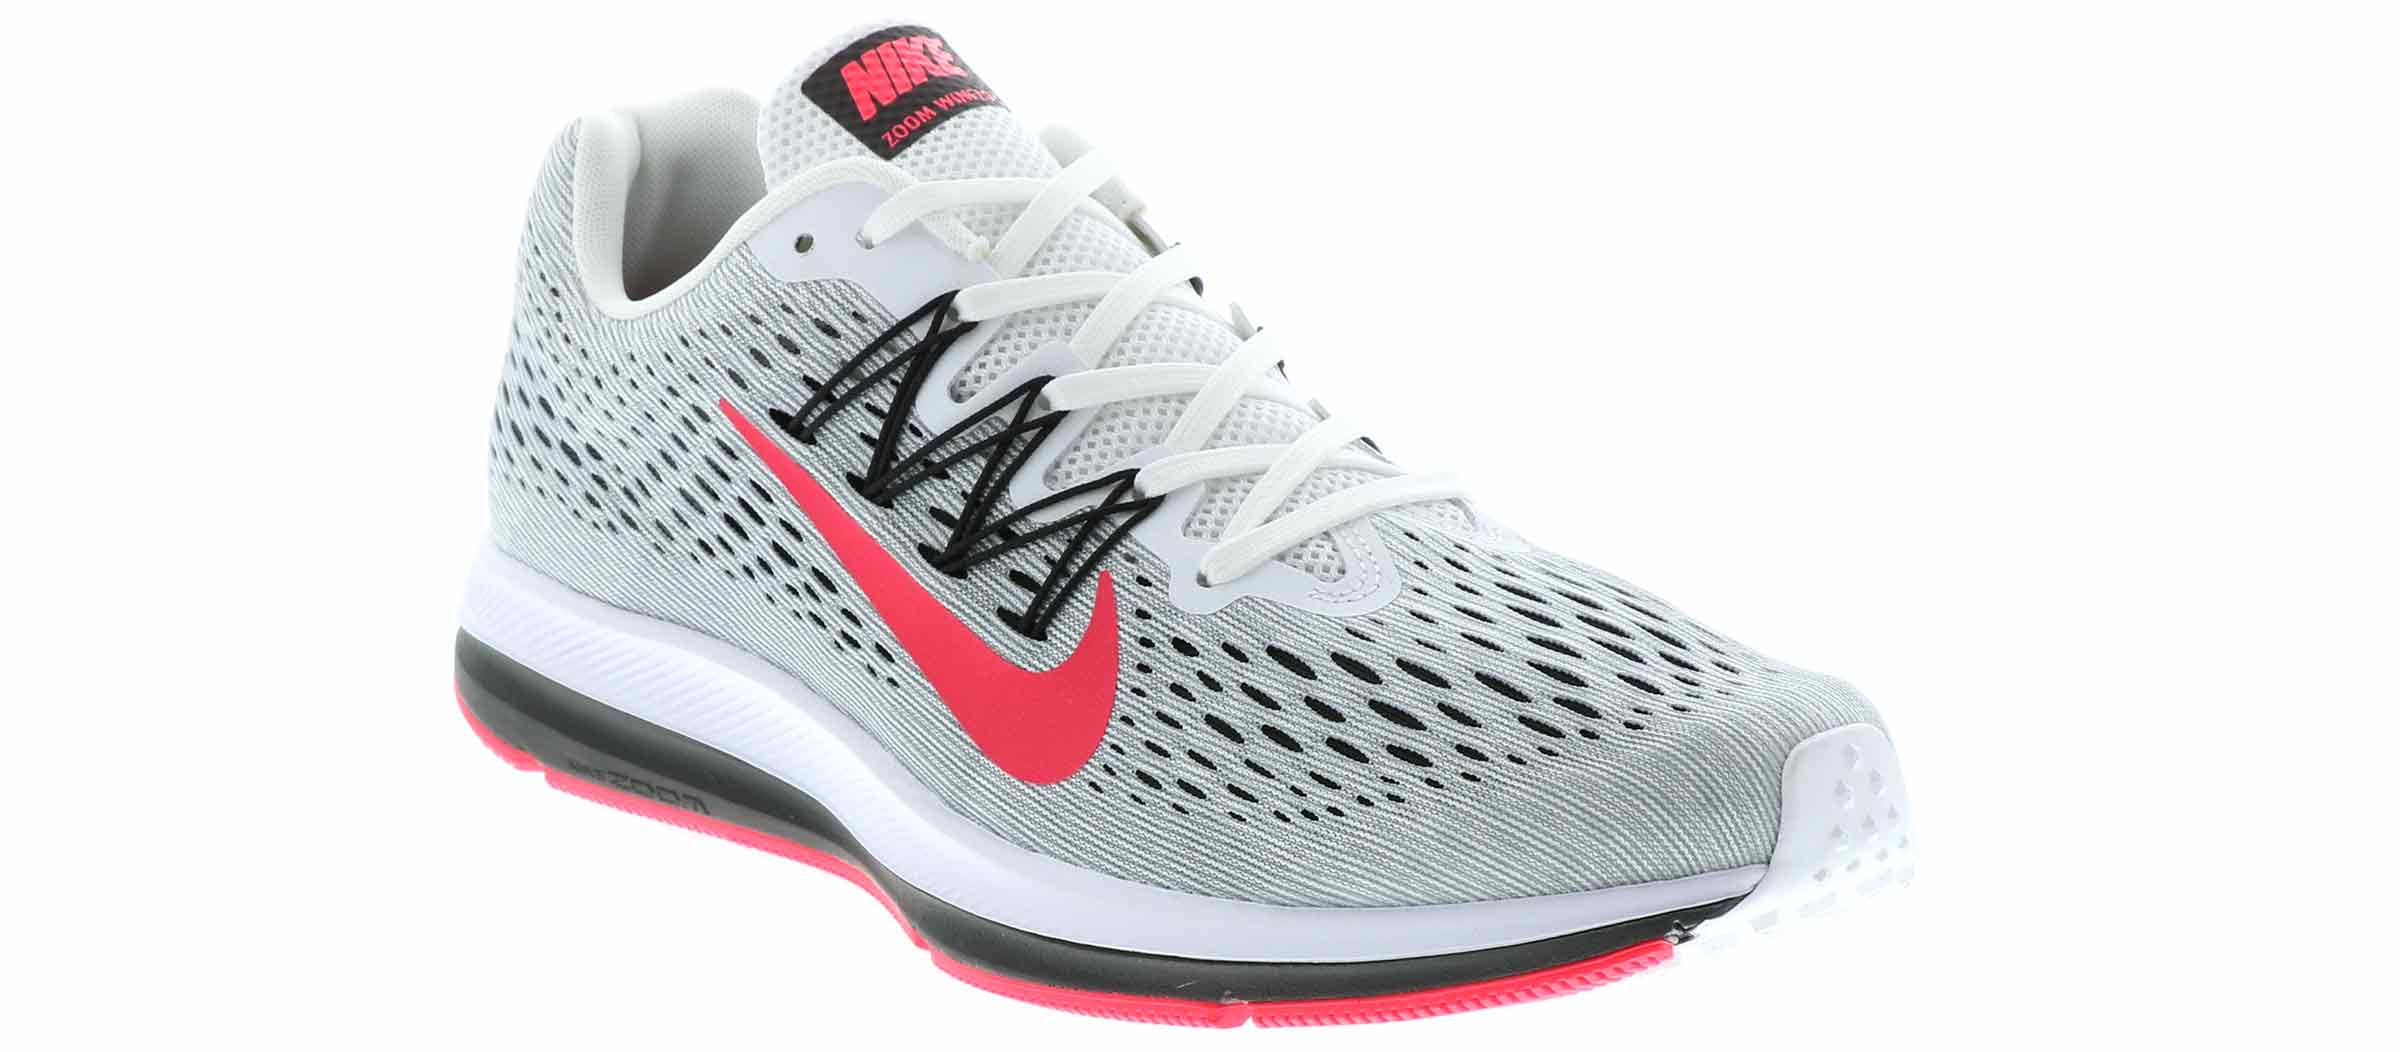 Men's Nike Air Zoom Winflo 5